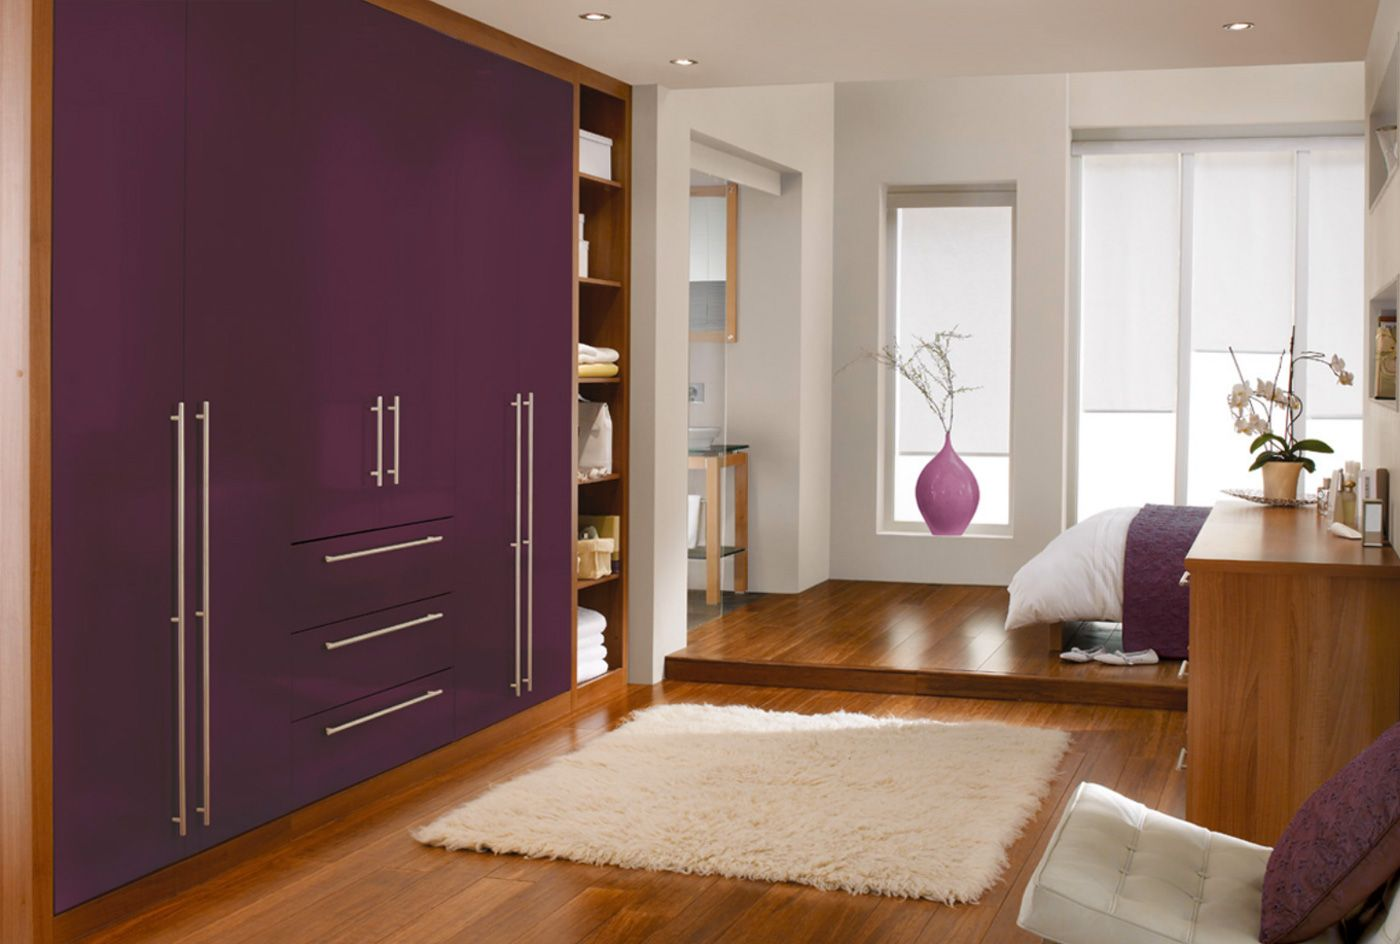 35 Modern Wardrobe Furniture Designs Wardrobe furniture Modern. Room wardrobe designs